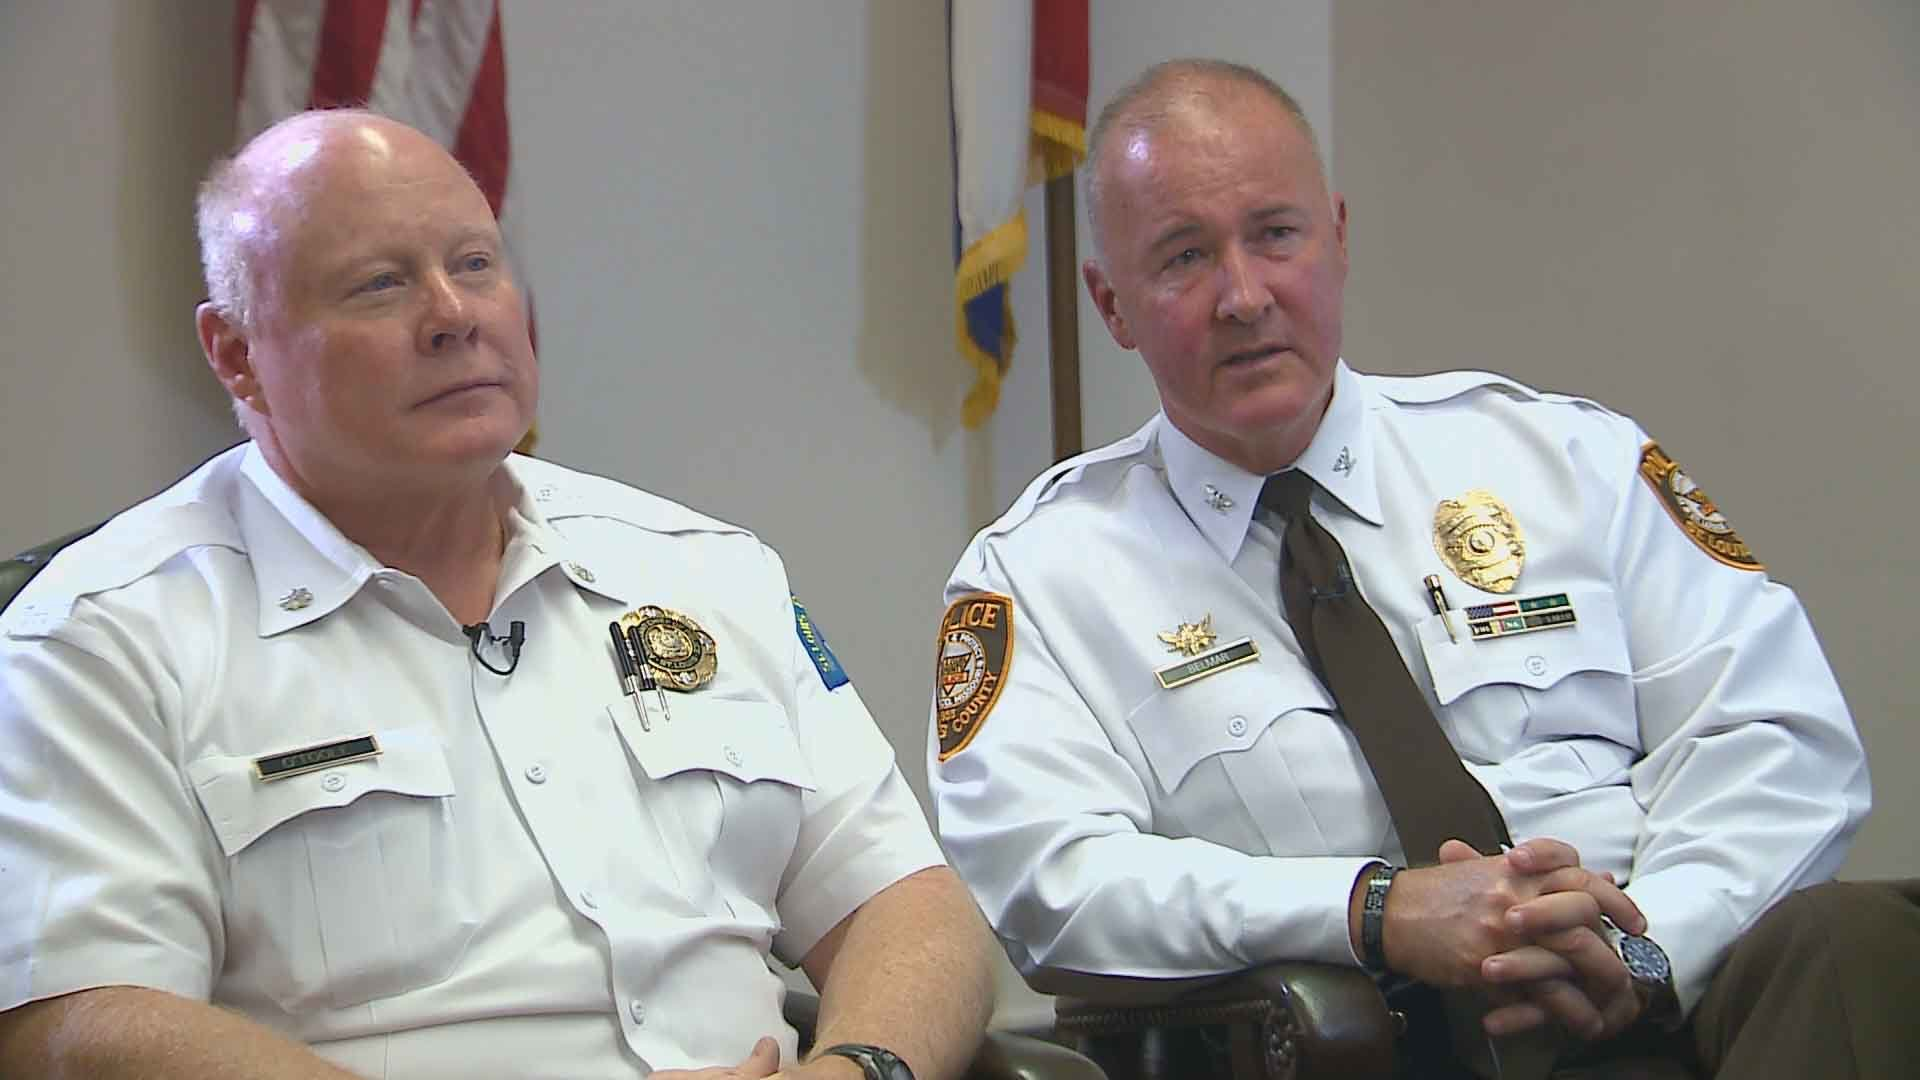 Acting St. Louis Police Chief Lawrence O'Toole (L) and St. Louis County Police Chief Jon Belmar (R). Credit: KMOV